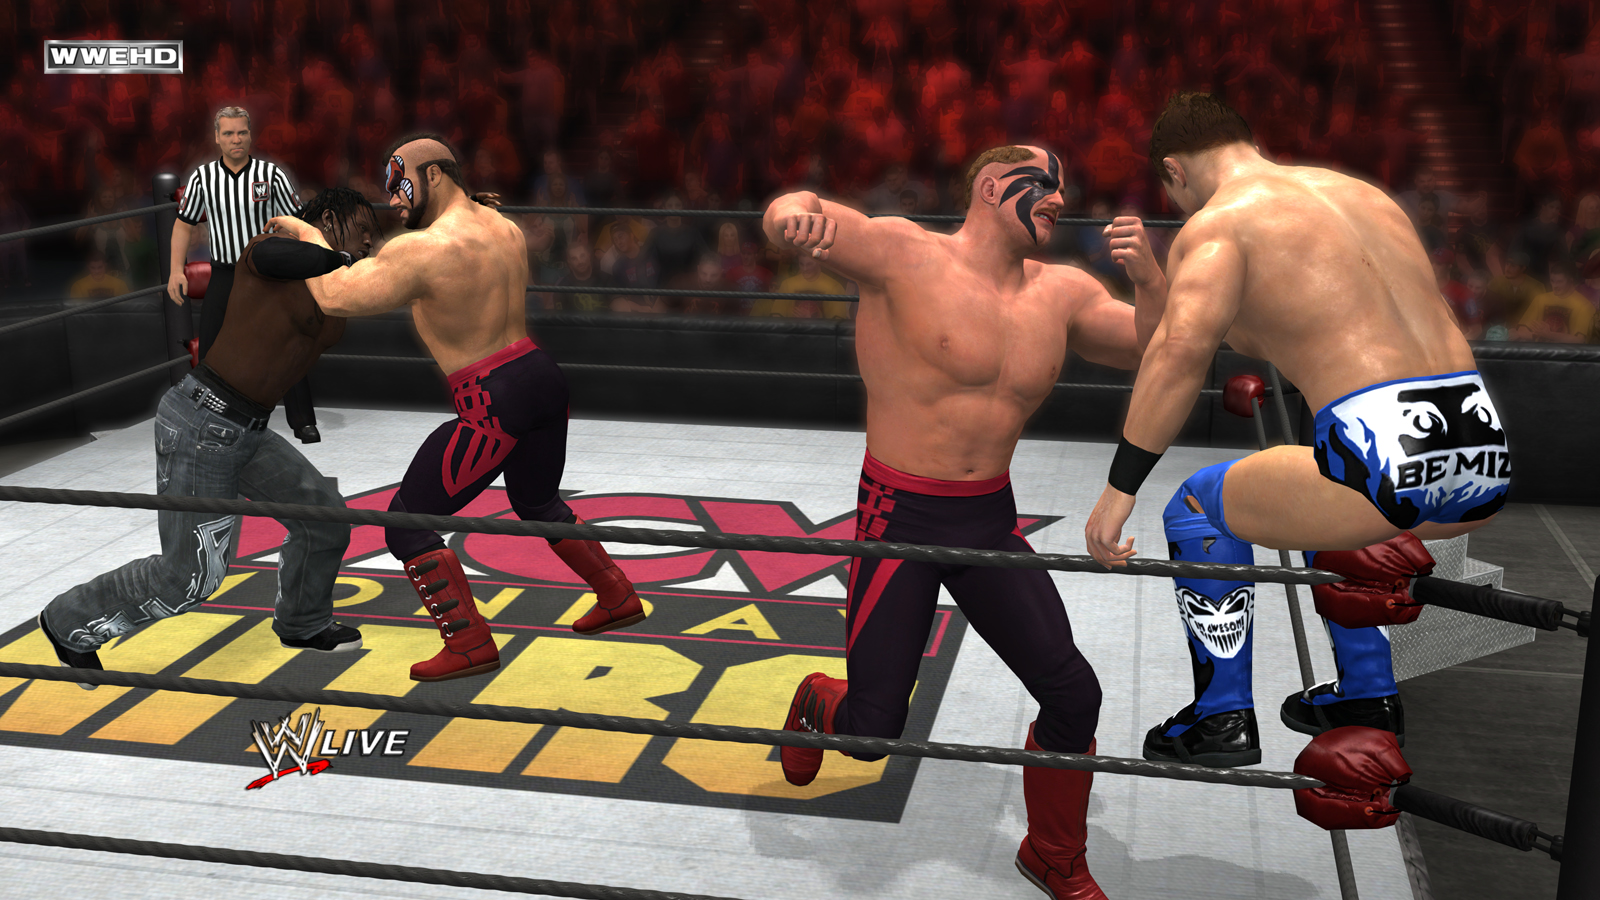 WWE 12 - Road Warriors